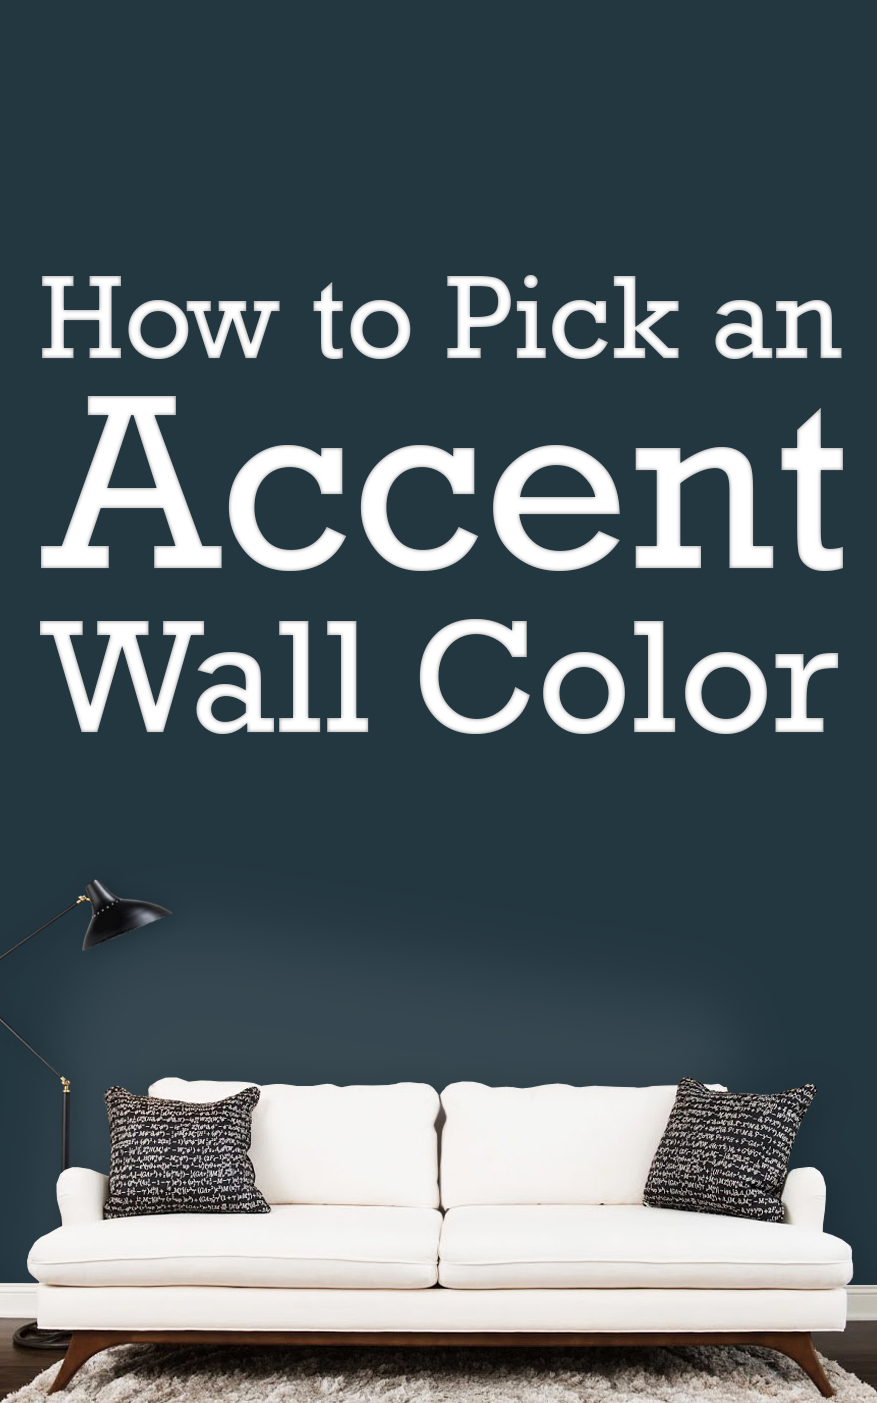 How To Pick An Accent Wall Color Budget Dumpster Accent Wall Colors Brown Accent Wall Accent Wall Paint